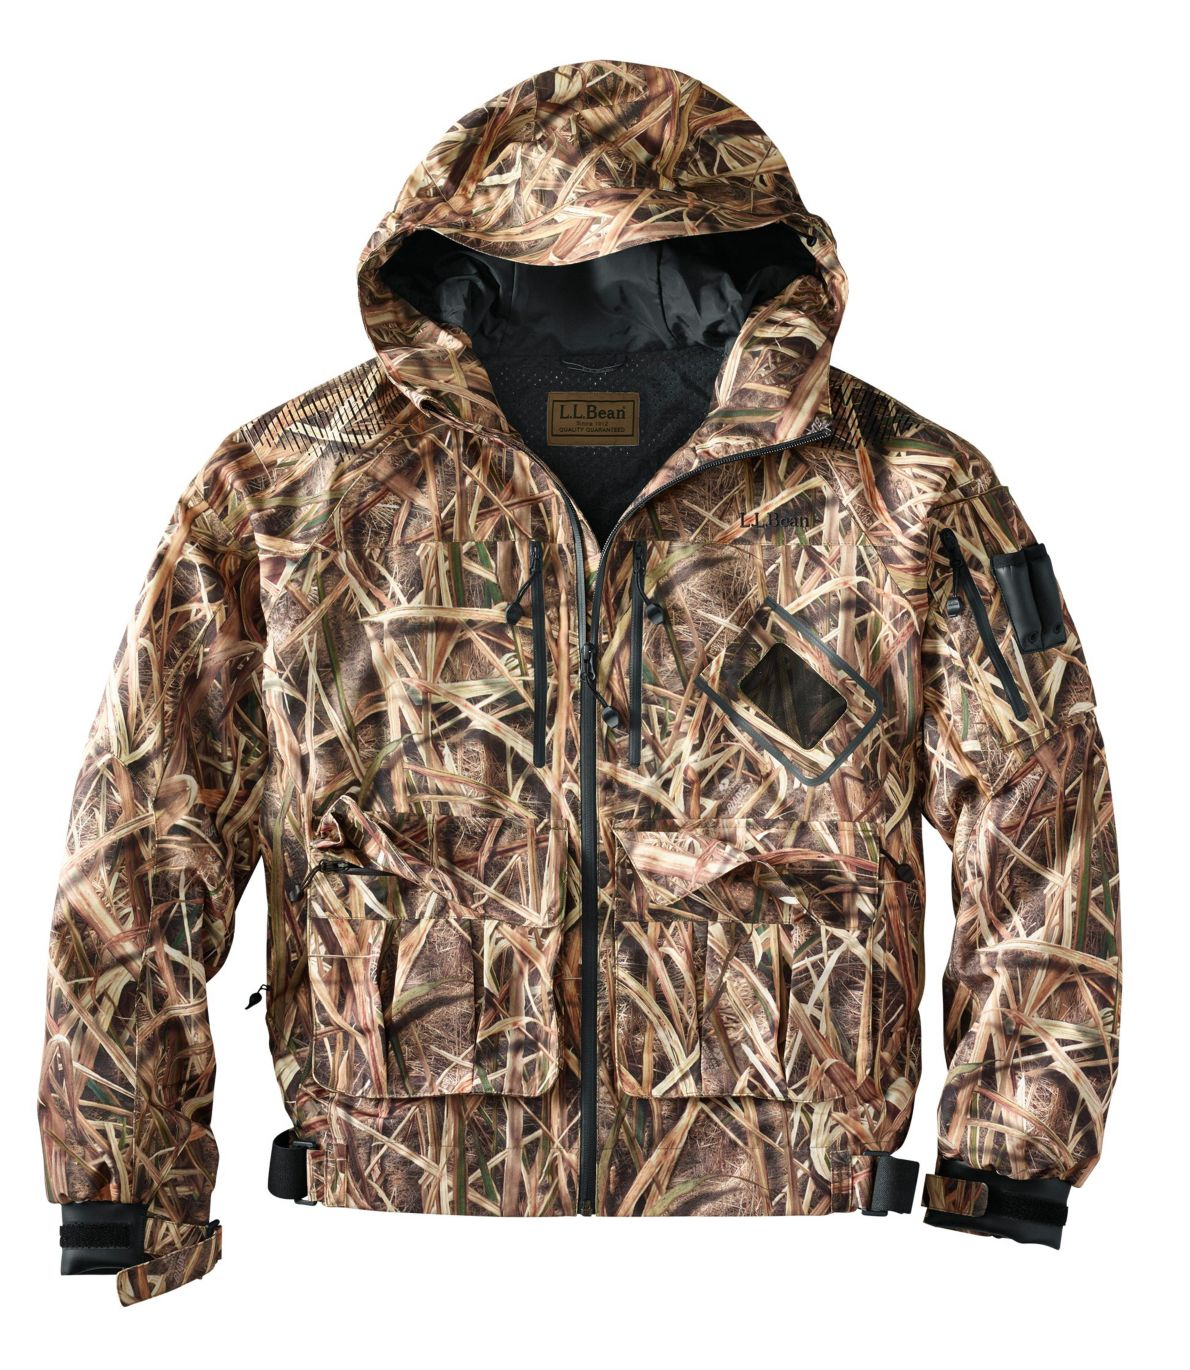 Men's L.L.Bean Waterfowler Pro Jacket